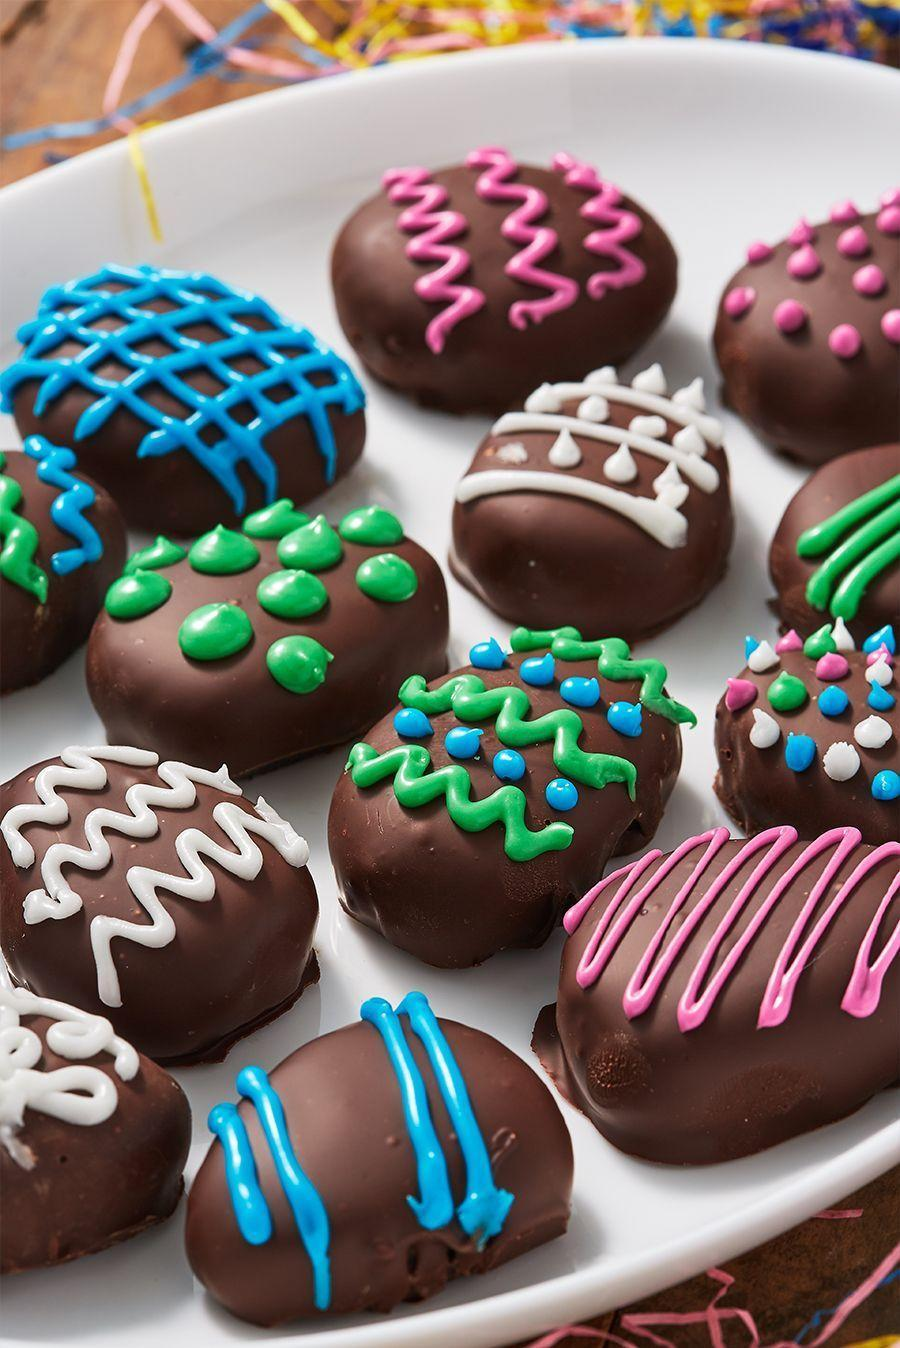 """<p>For a treat that's as fun to make as it is to eat, try out these chocolate-dipped Oreo truffles. Make a bunch and gather the whole family around the table to decorate. </p><p><strong><em>Get the recipe at <a href=""""https://www.delish.com/cooking/recipe-ideas/a26975763/easter-egg-oreo-truffles-recipe/"""" rel=""""nofollow noopener"""" target=""""_blank"""" data-ylk=""""slk:Delish"""" class=""""link rapid-noclick-resp"""">Delish</a>.</em></strong></p>"""